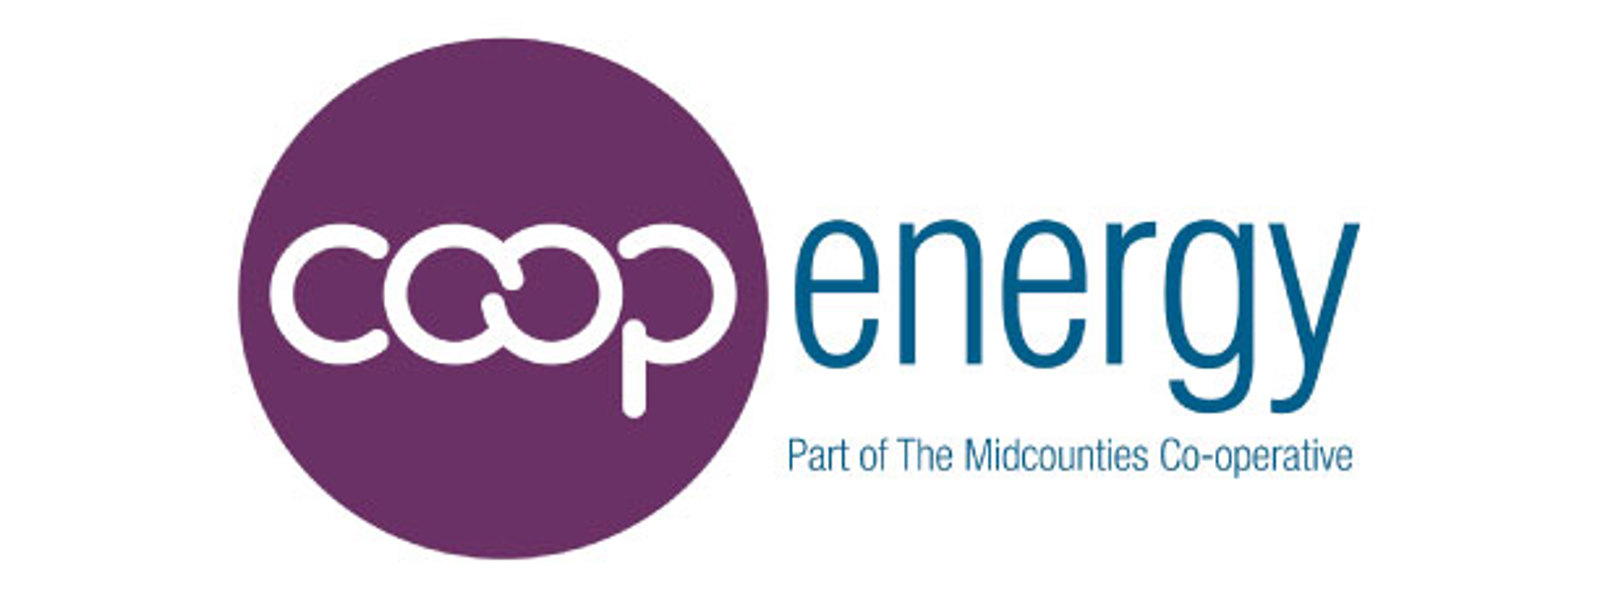 Co-op Energy launches new tariff sourcing clean energy from community projects